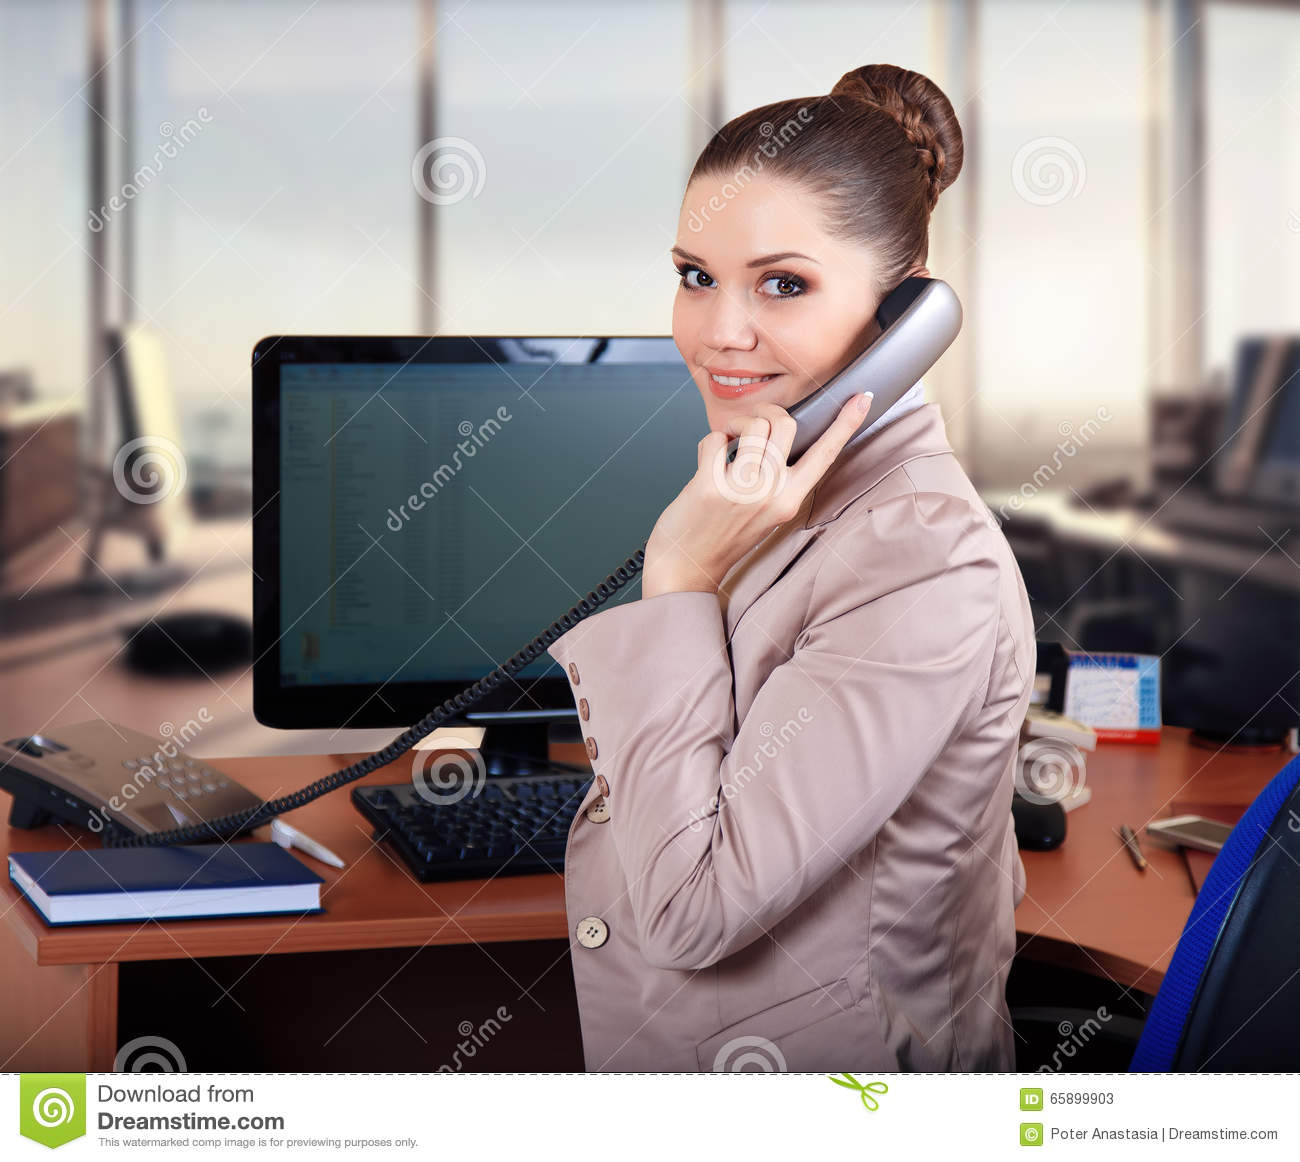 Business Woman In The Office Talking On The Phone Stock ... | 1300 x 1162 jpeg 135kB